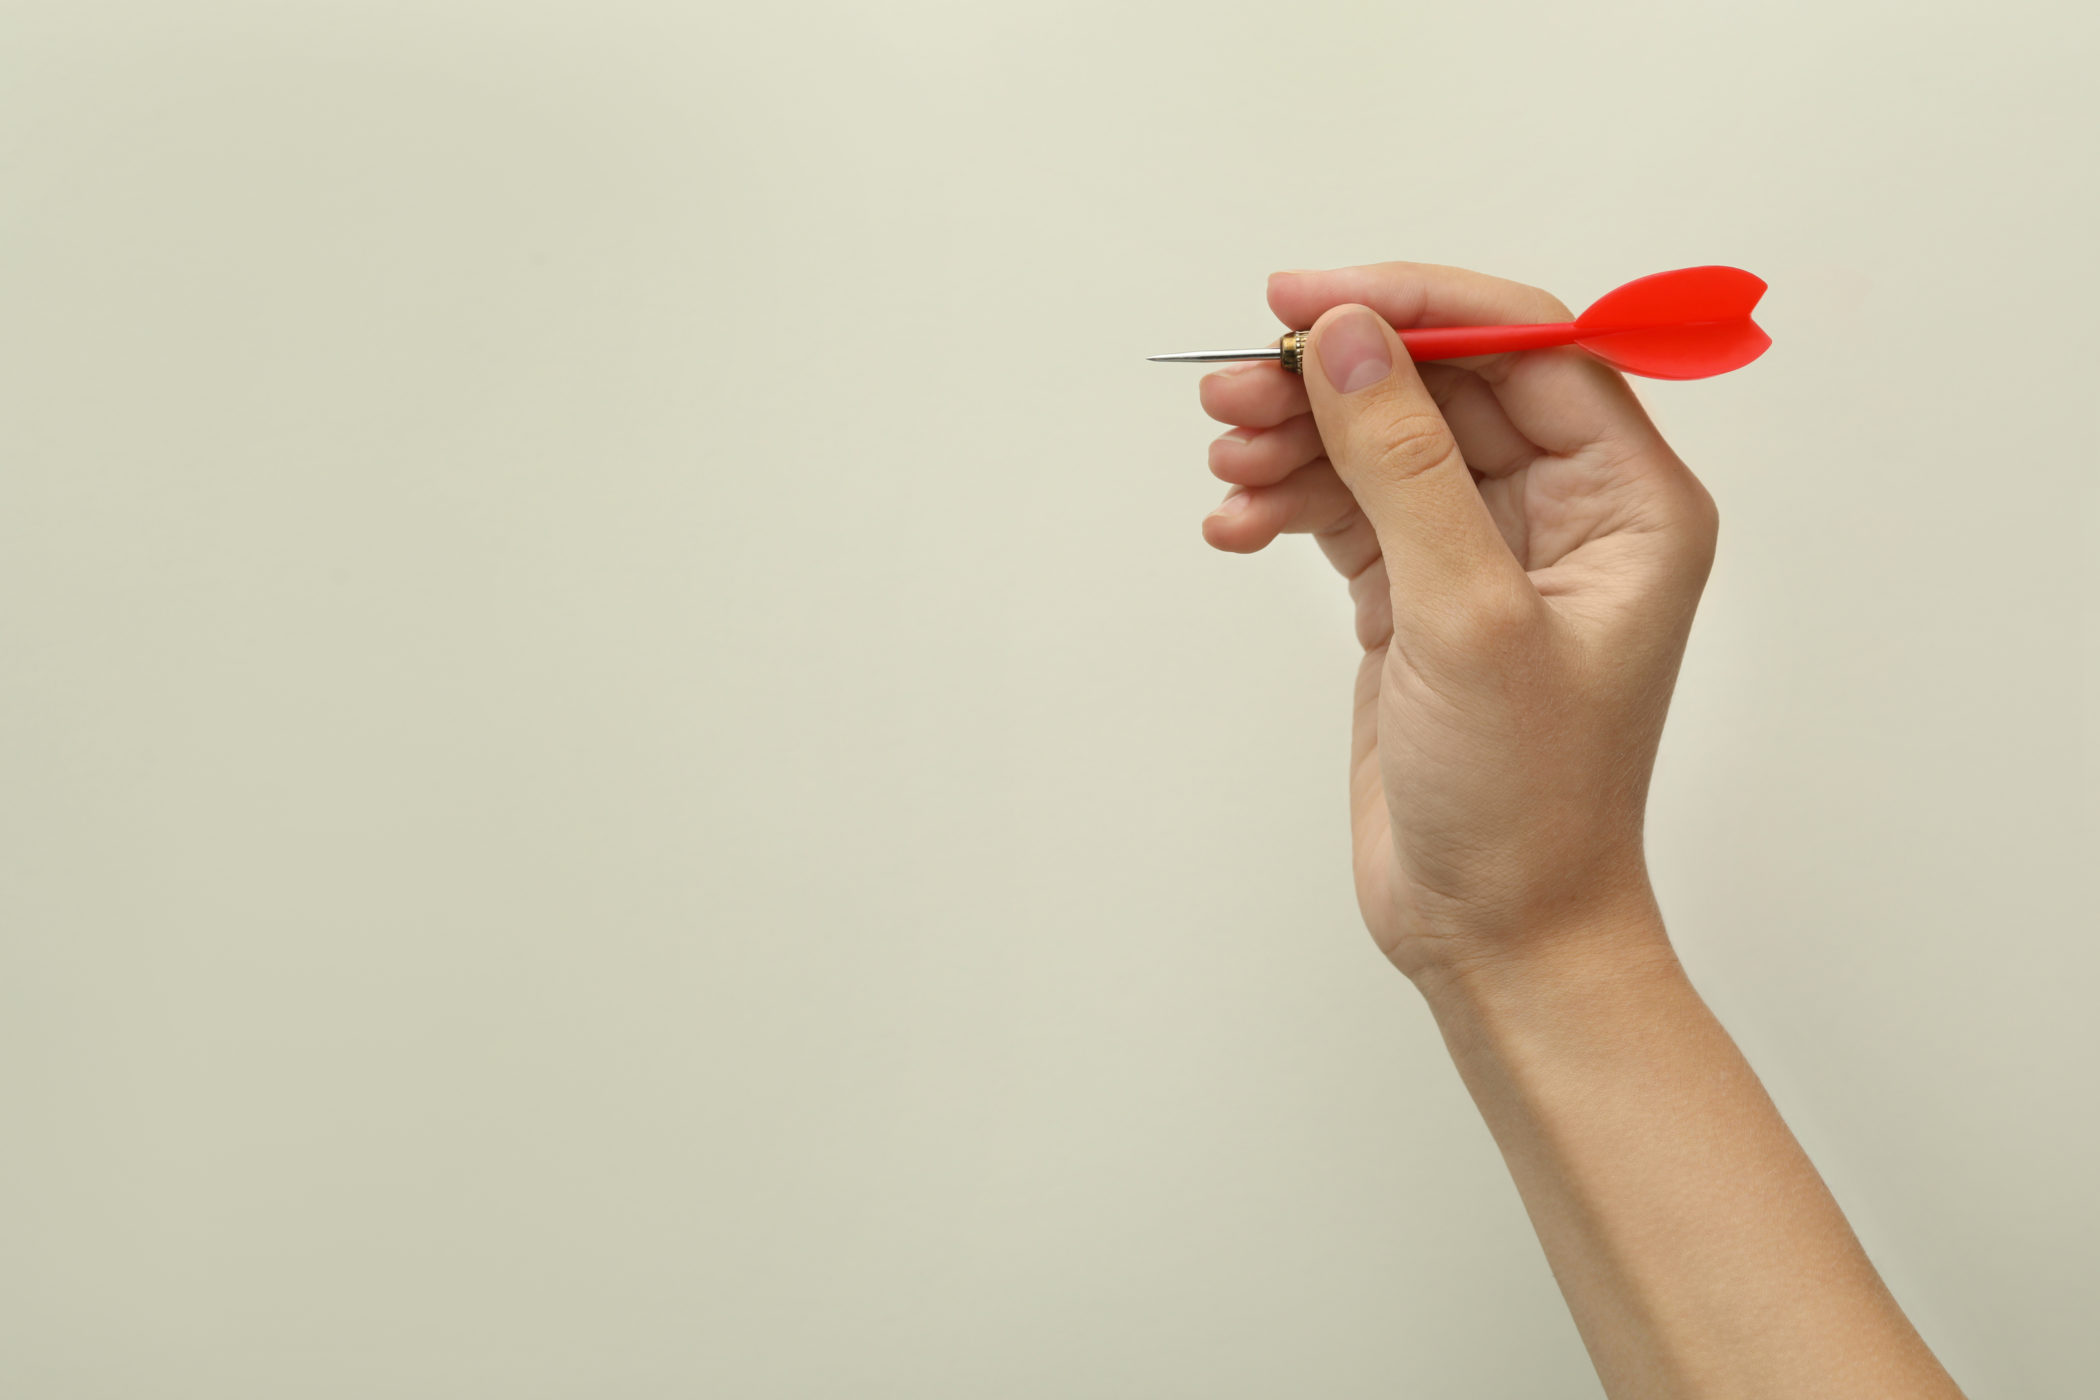 Woman holding red dart on light background, closeup. Space for text